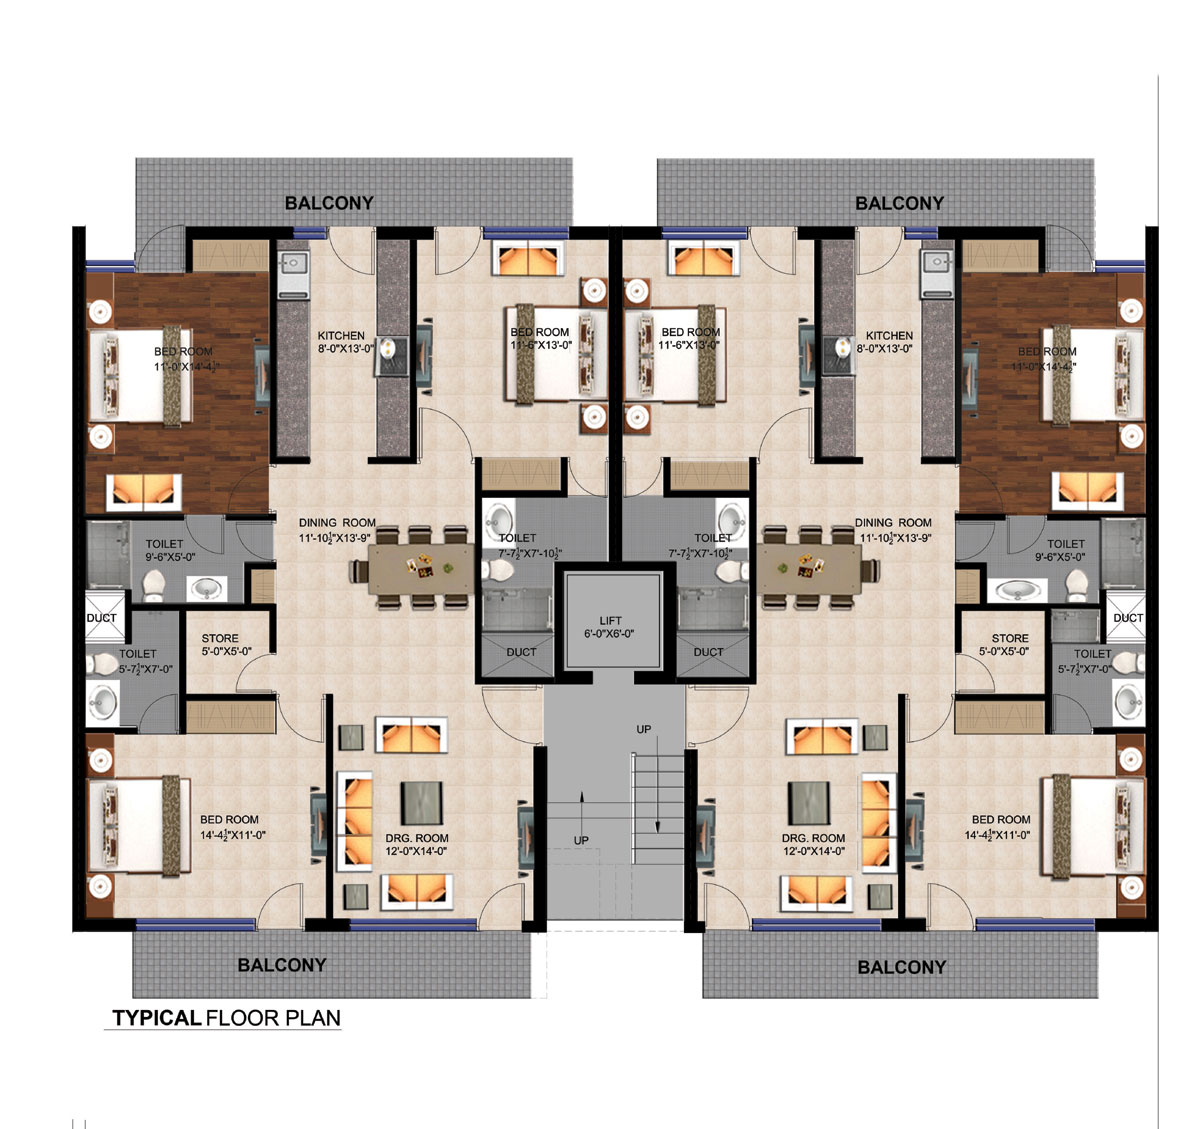 Apartment Floor Plans: PALM APARTMENTS, Manohar Singh & Co. Independent Floors In